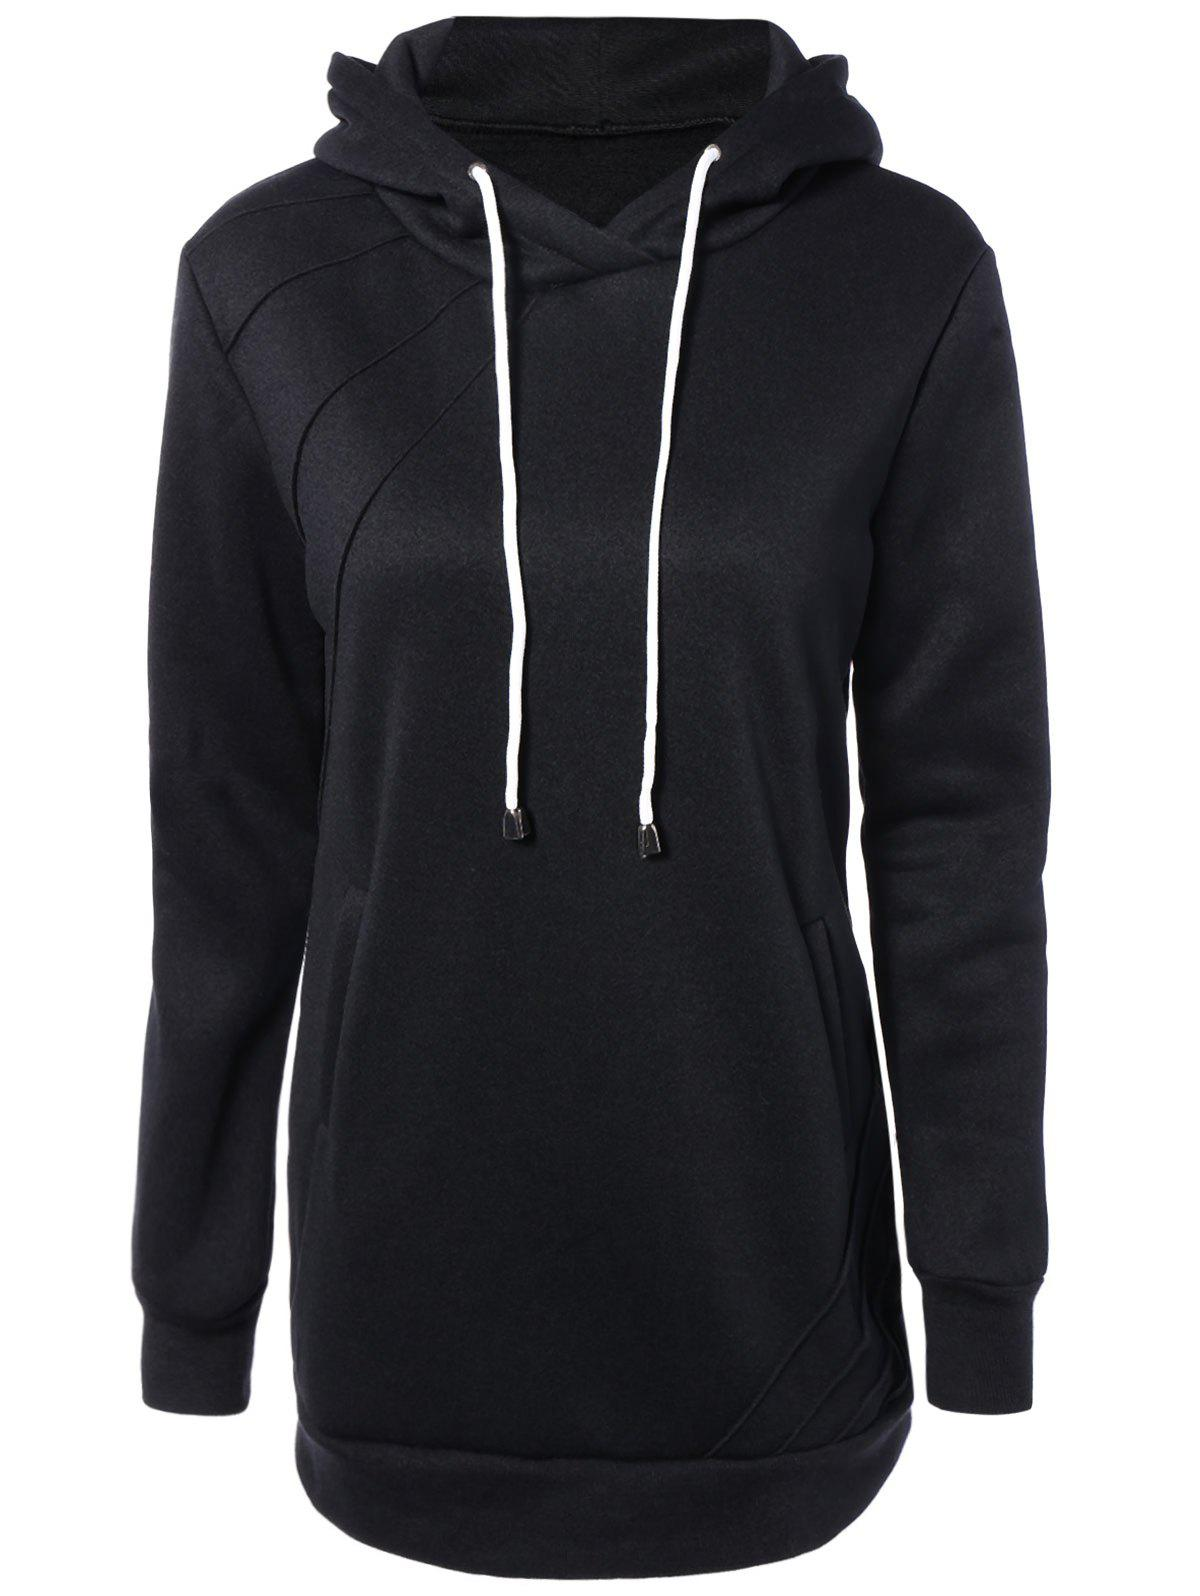 Slant Side Pocket Long Sleeve Drawstring Hoodie - BLACK XL